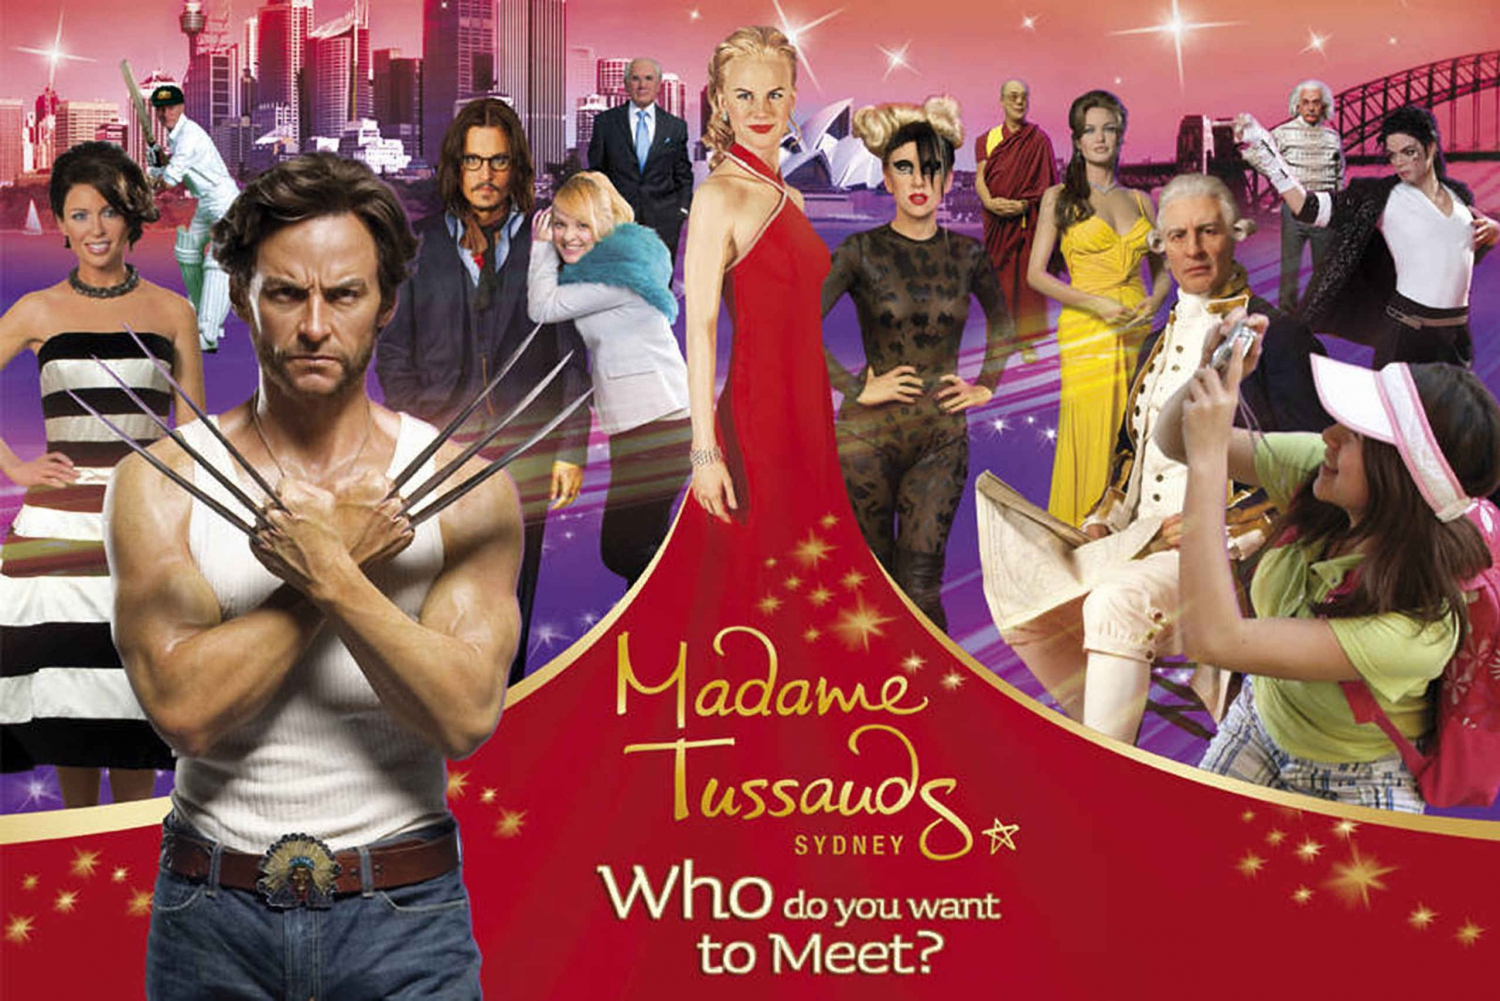 Sydney Harbour: 30-Minute Jet Ride + Madame Tussauds Combo